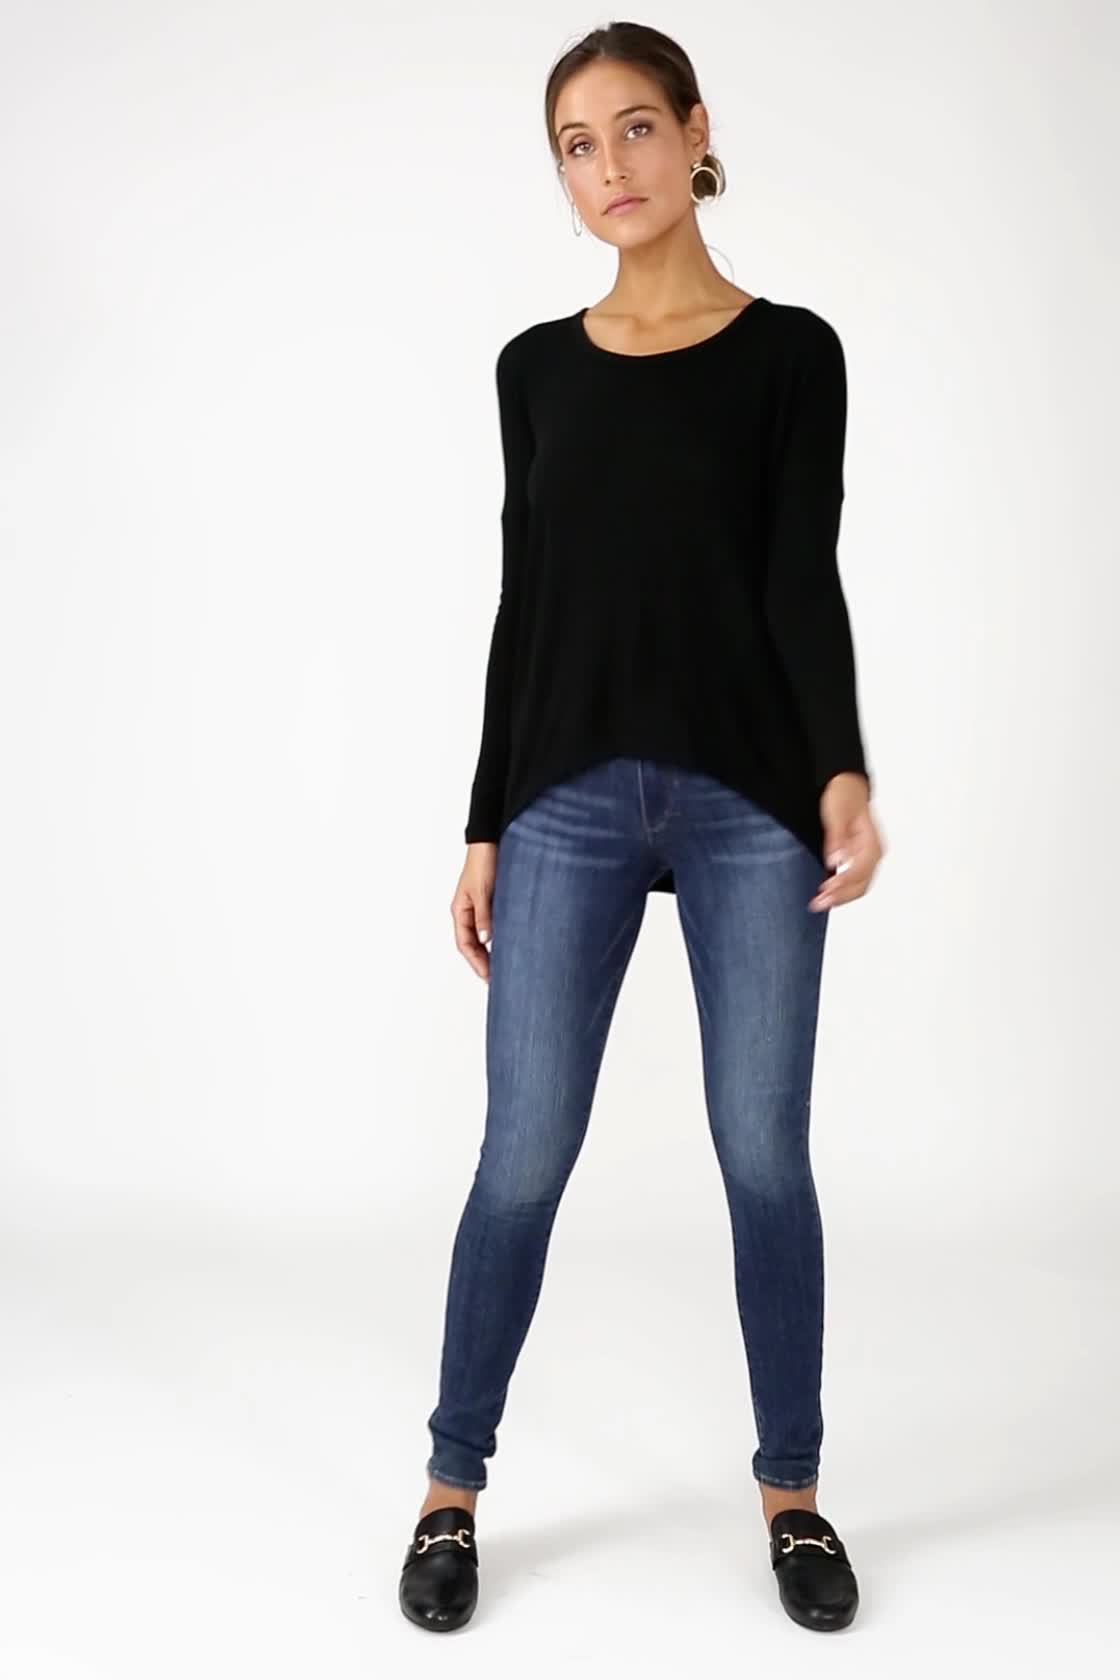 75a56f906c6 Cute Black Sweater - Knit Sweater - Long Sleeve Top